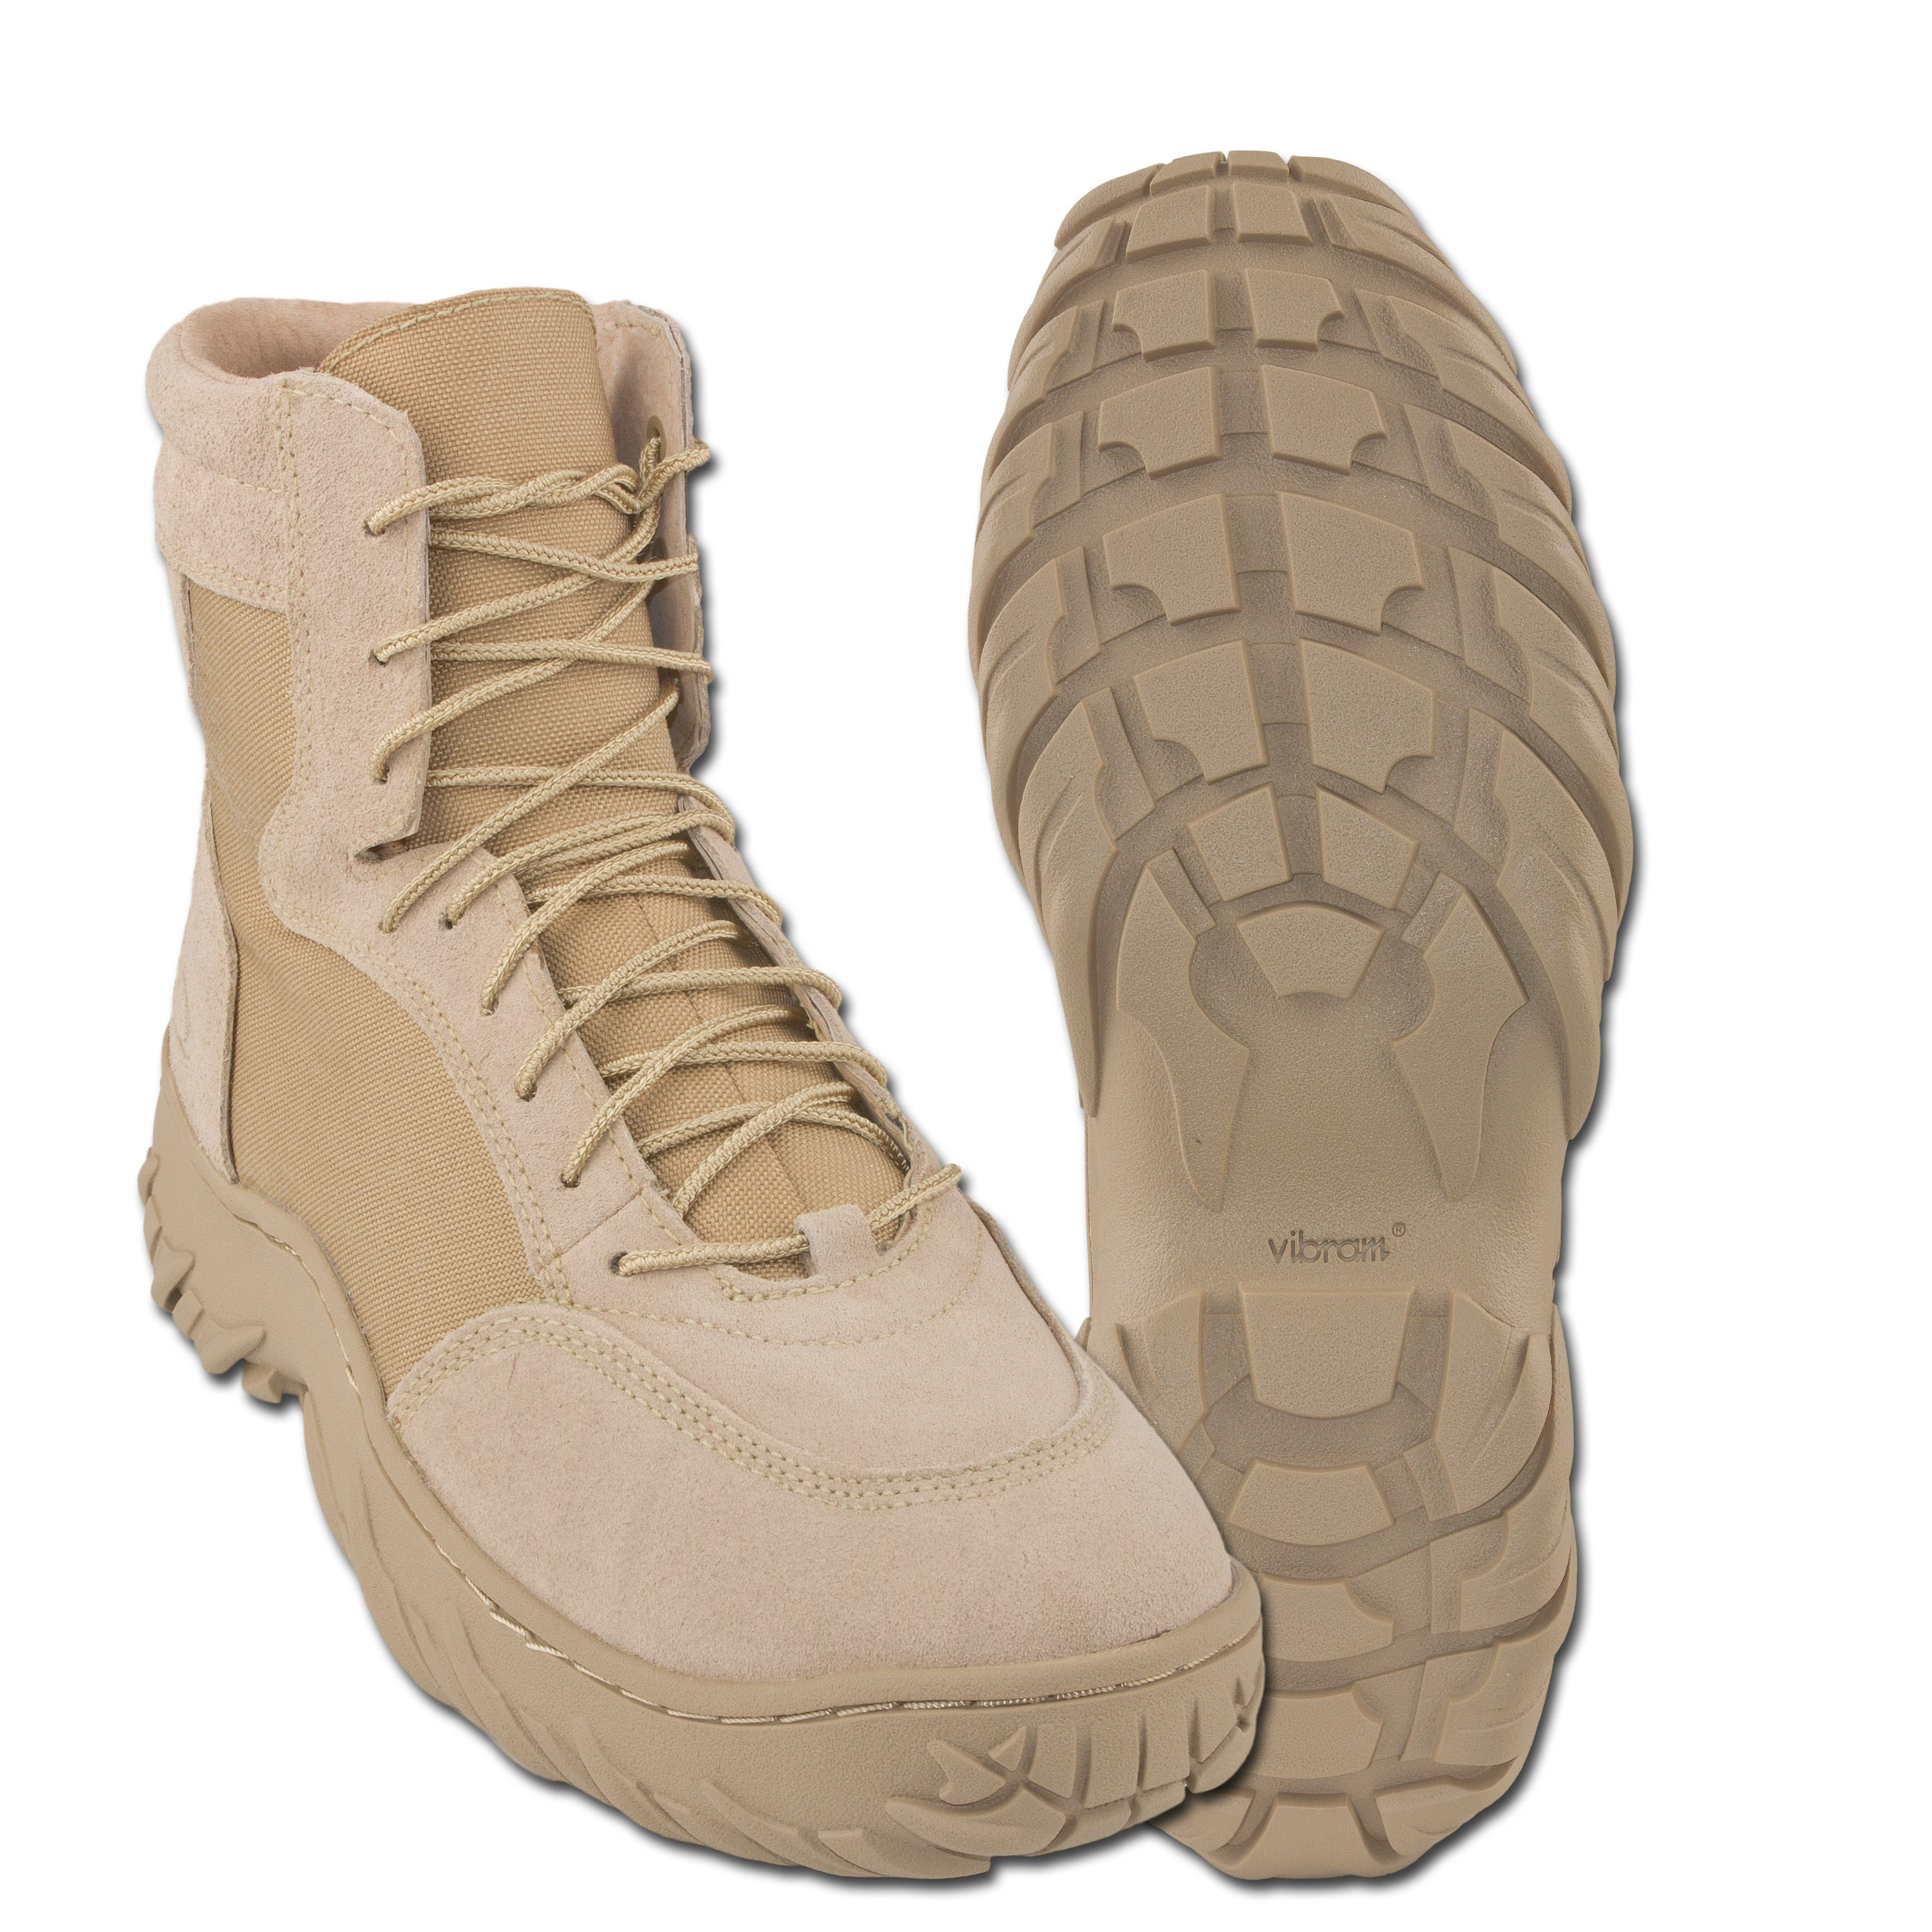 Oakley Standard Issue Assault Boot TAN COYOTE desert taille